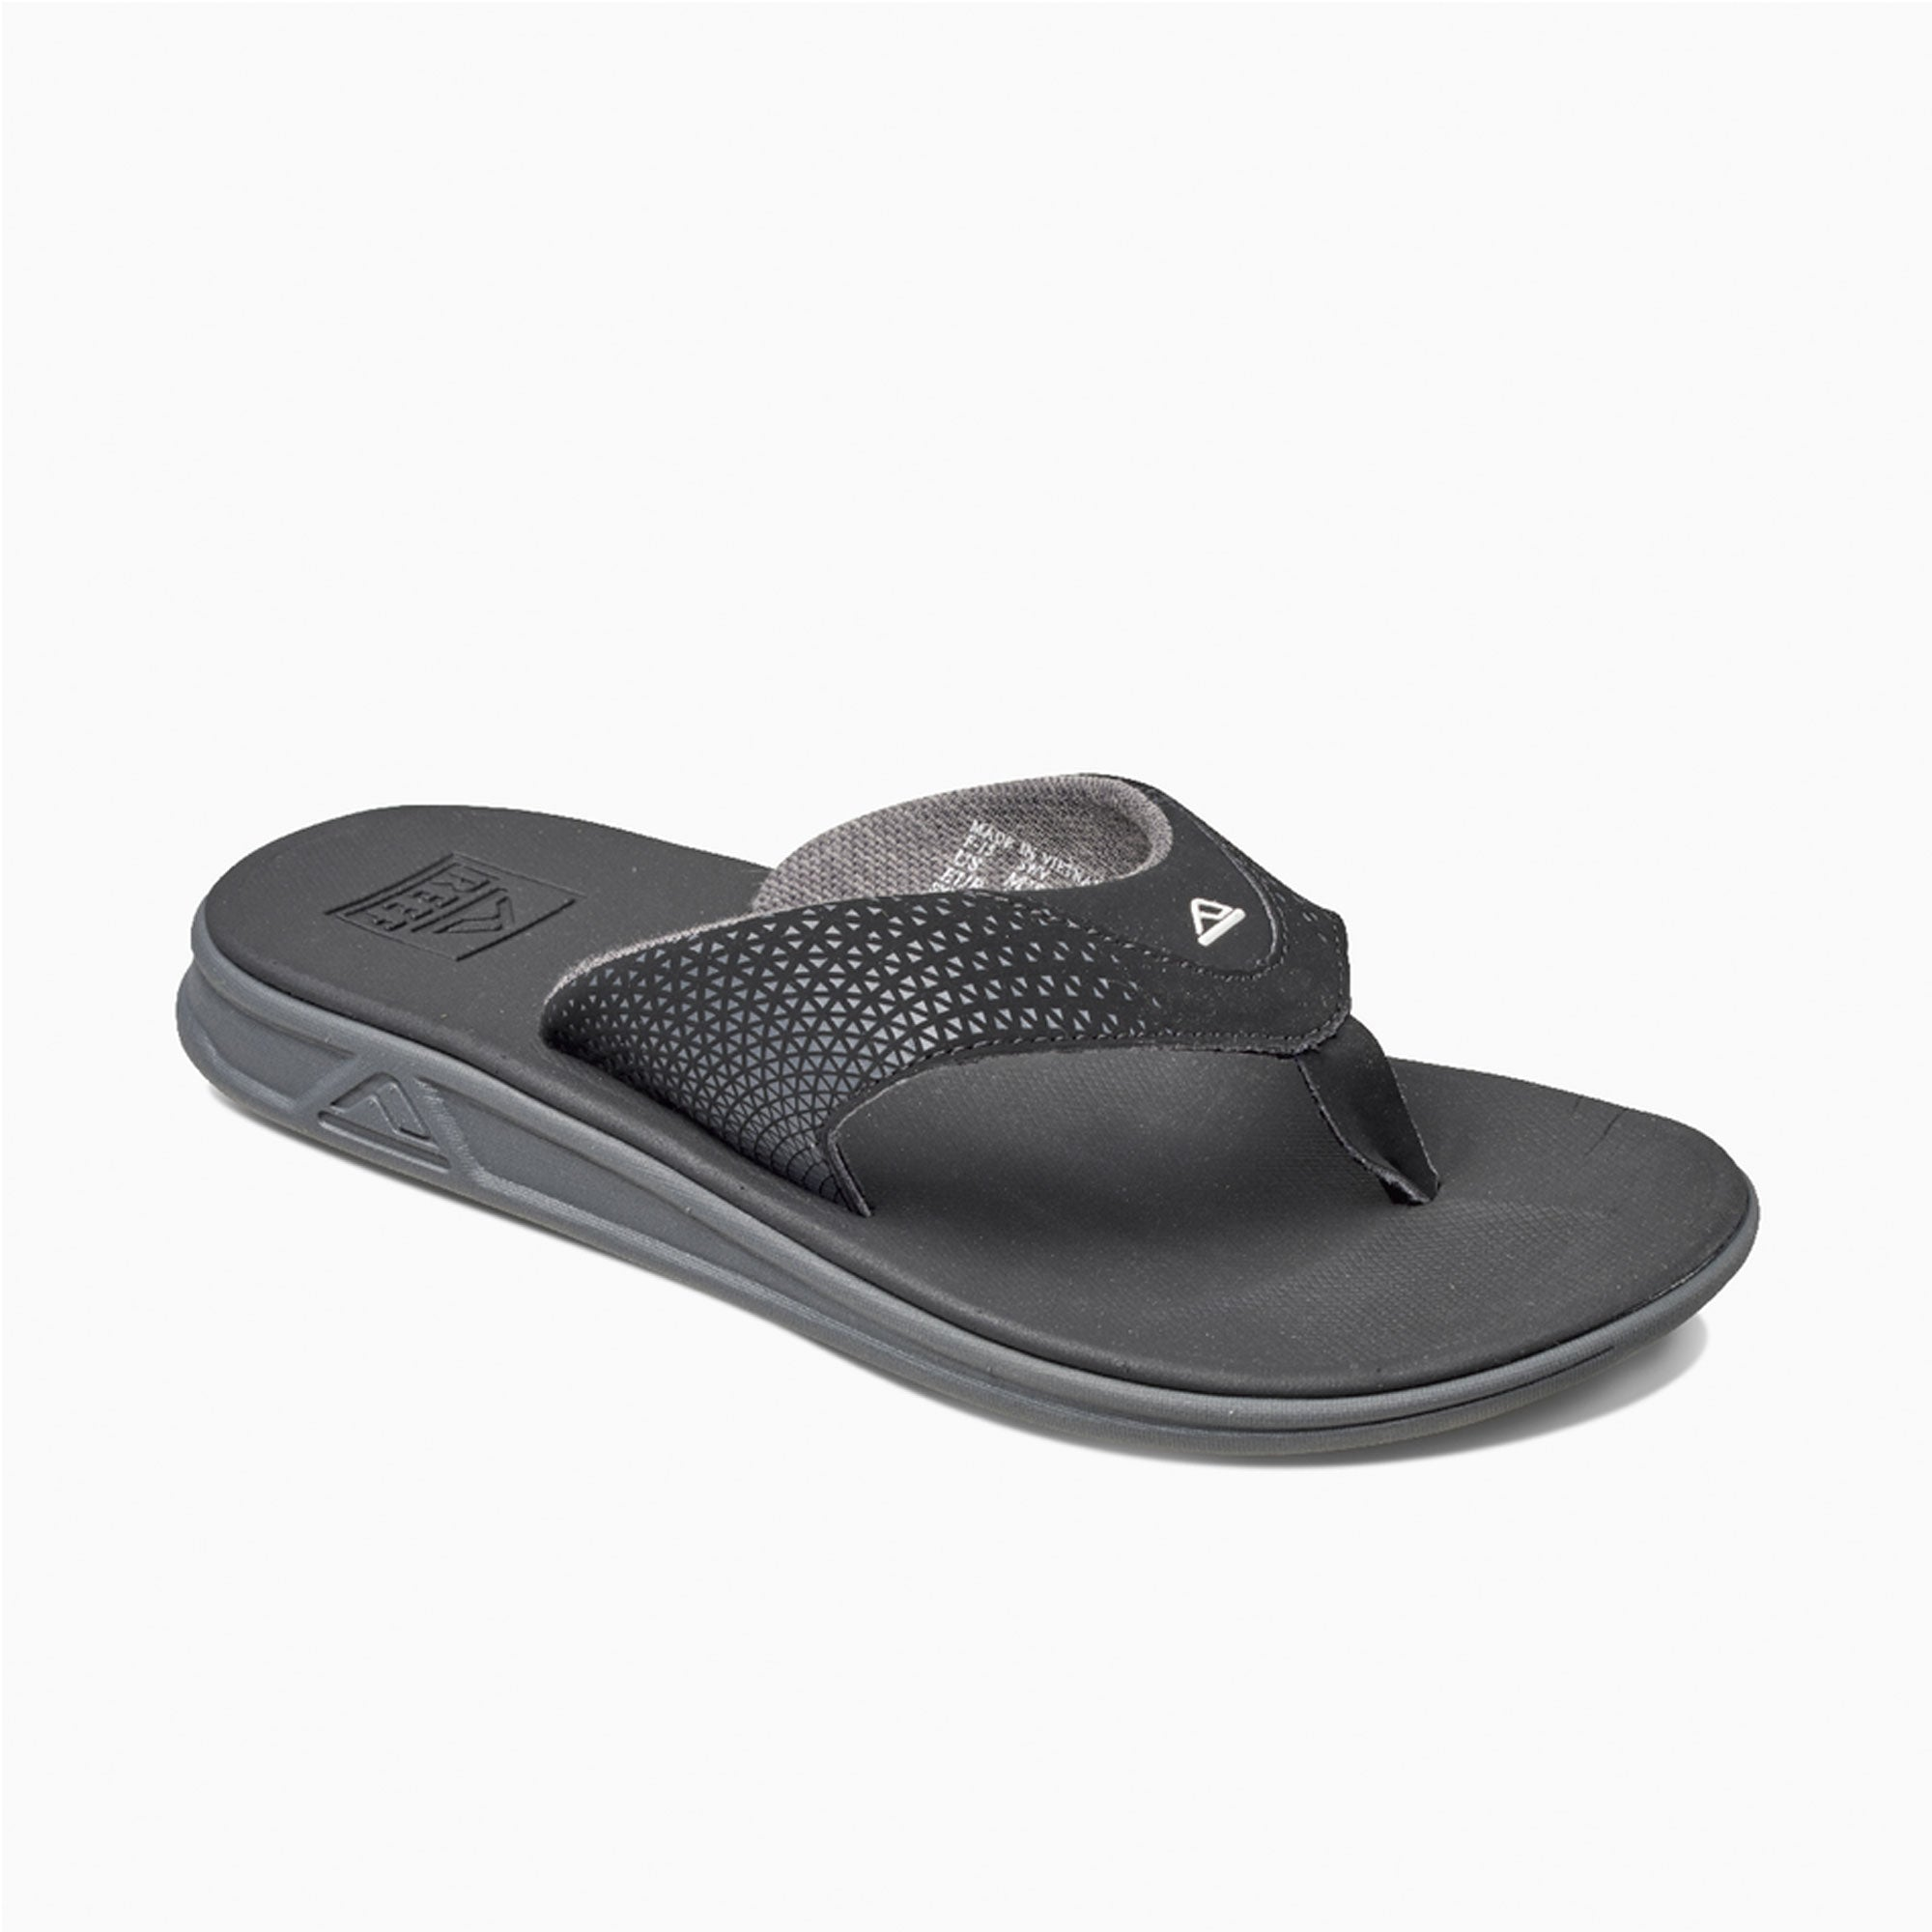 Reef Rover Men's Sandals - Black